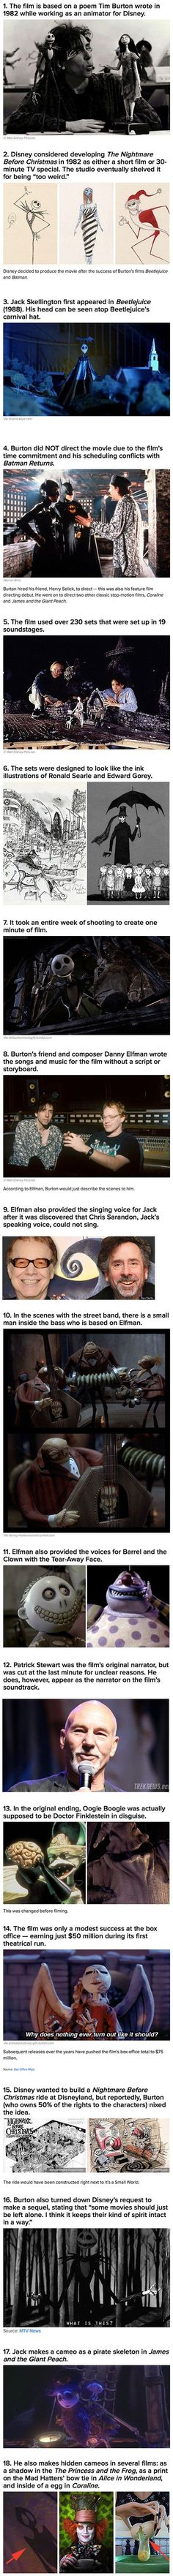 it's not Disney but still a great film-Here are some interesting things you probably did not know about The Nightmare Before Christmas. I really like Tim Burton and Danny Elfman! Movie Facts, Fun Facts, Weird Facts, Disney Love, Disney Magic, Disney And Dreamworks, Disney Pixar, Nightmare Before Christmas, Geeks